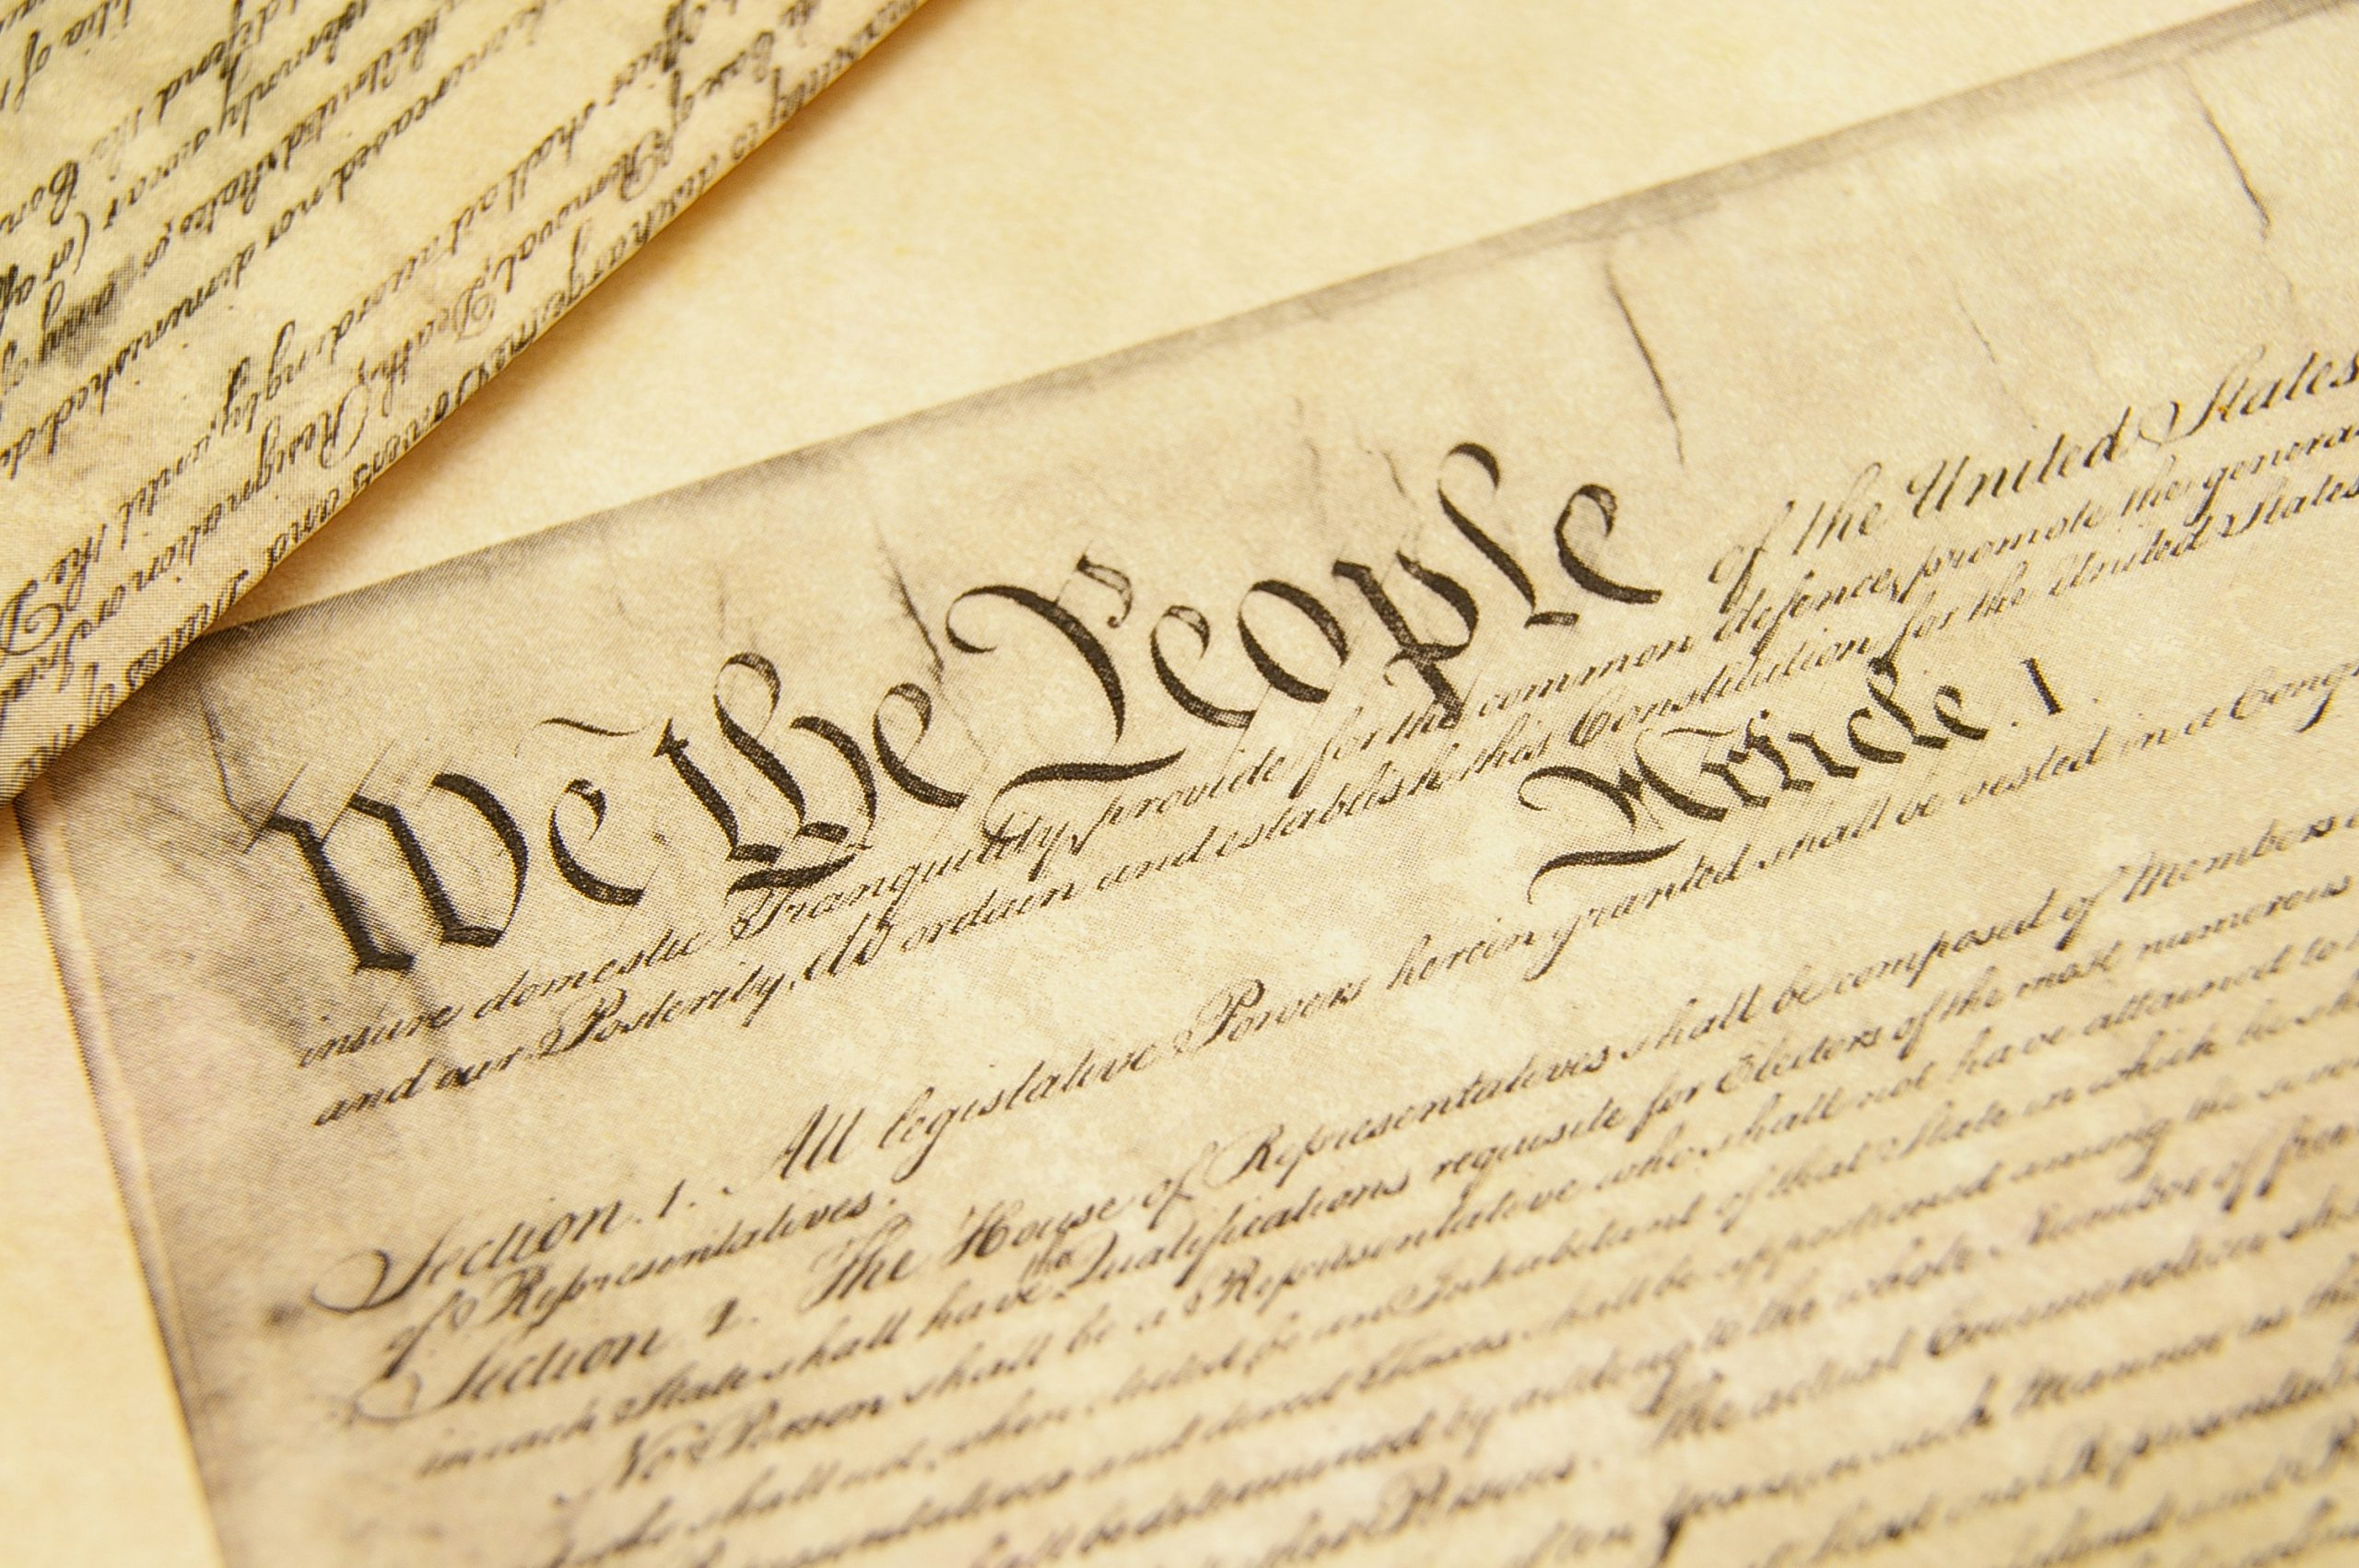 HIST 130 The Federal Framers' Debates on Religion: The First Amendment